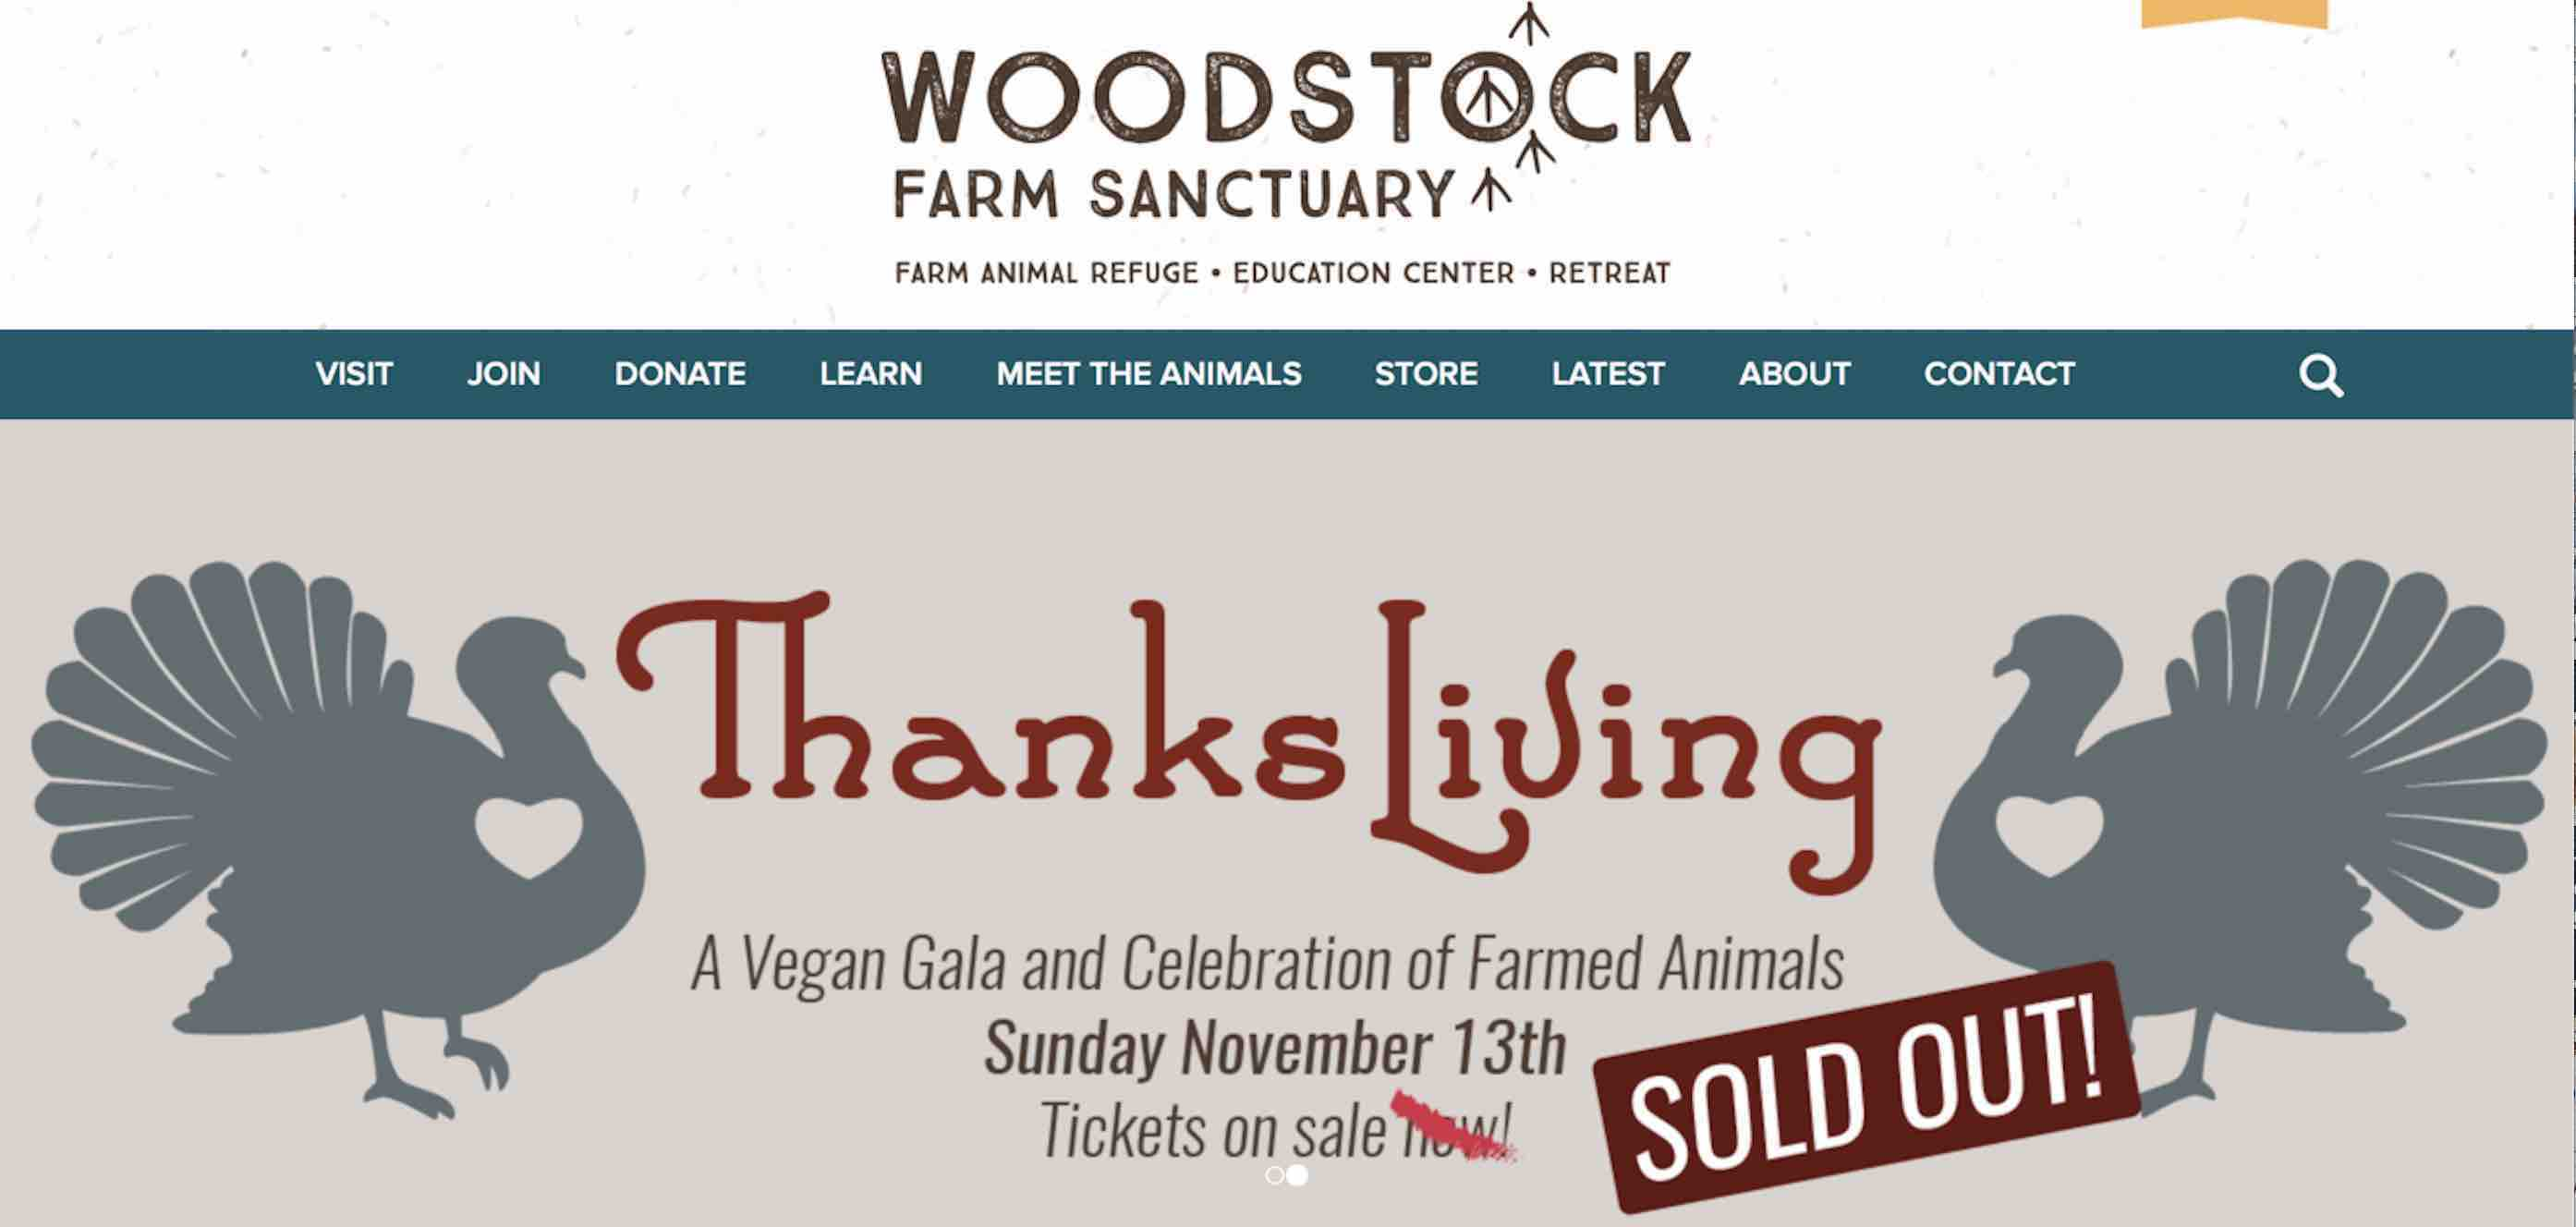 2016 ThanksLiving celebration at Woodstock Farm Sanctuary